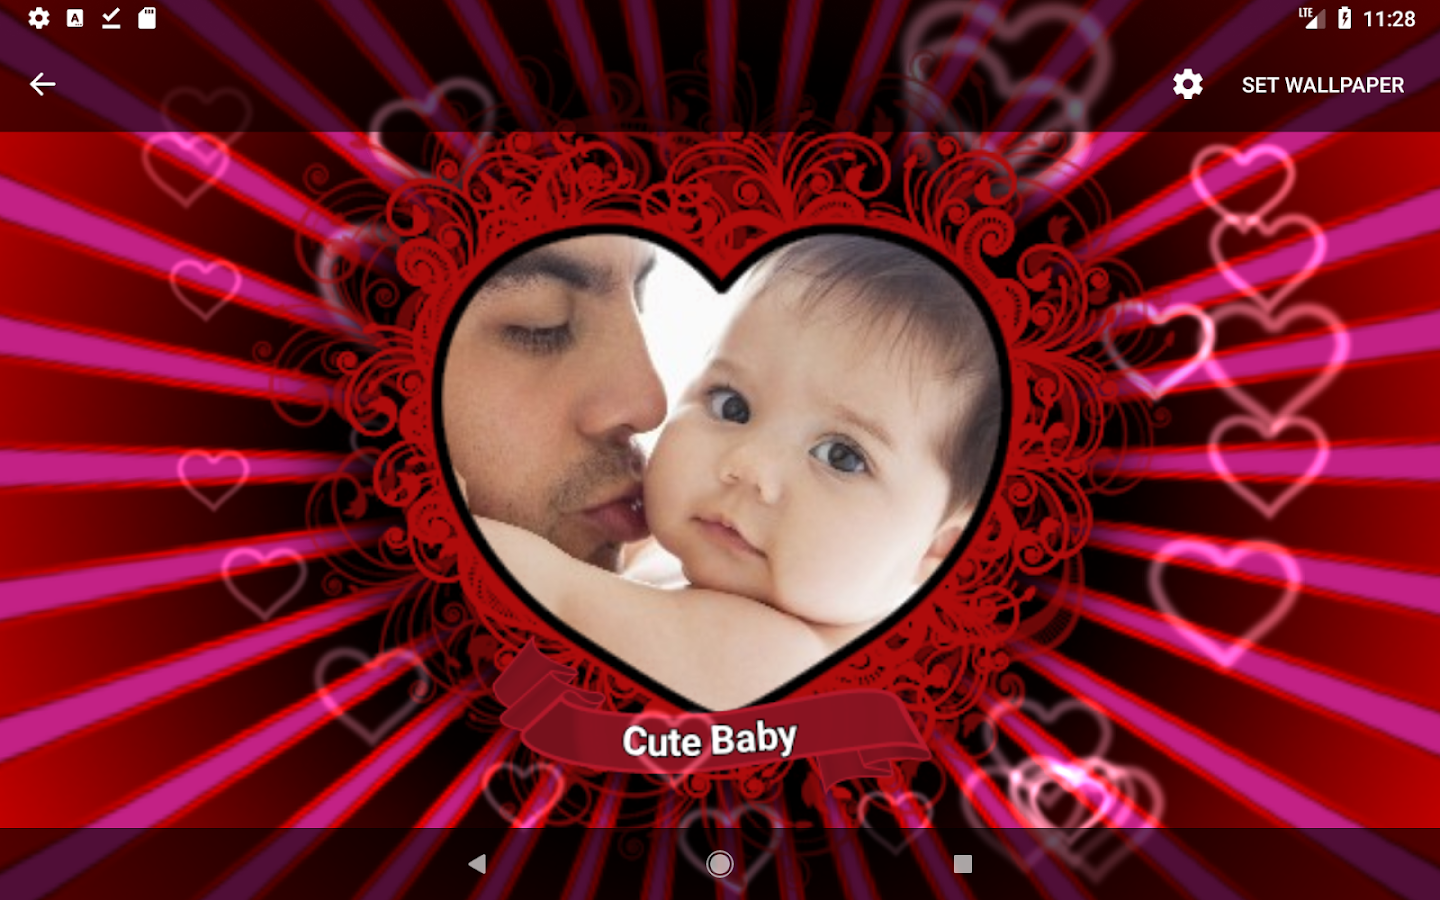 Screenshots of Love Photo Heart - Free for iPhone